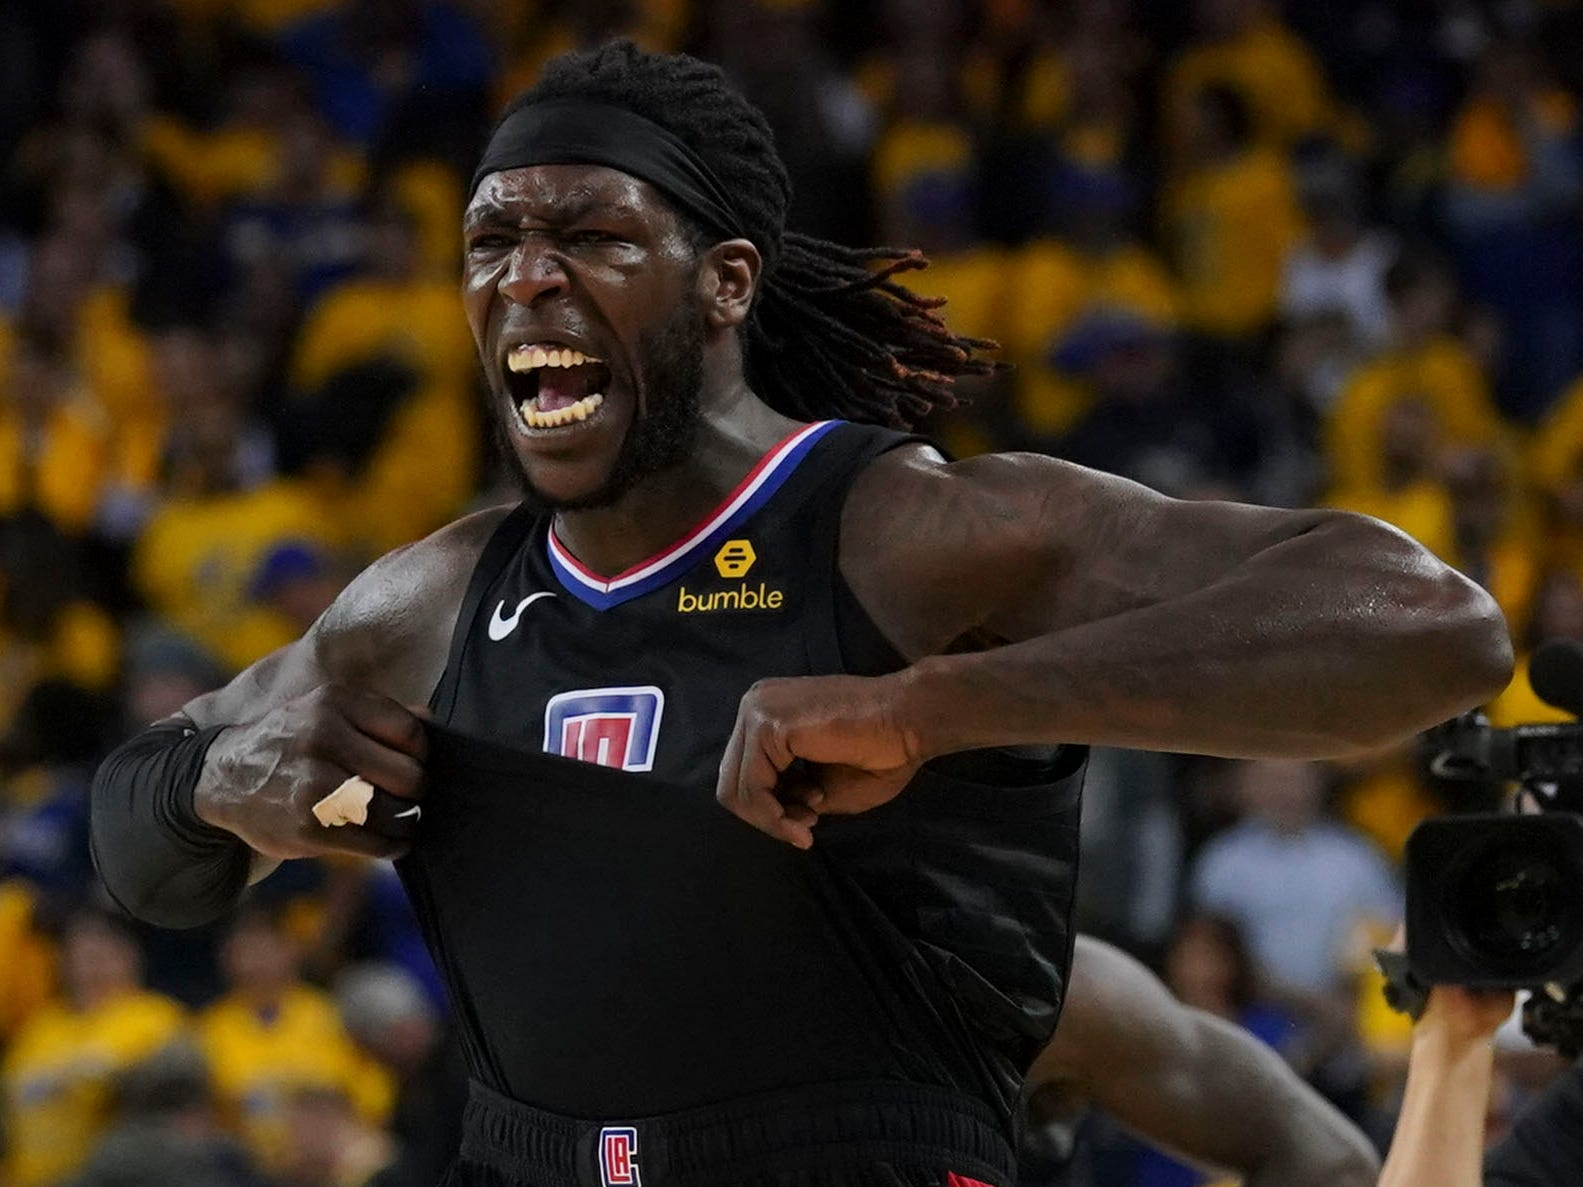 April 15: LA Clippers forward Montrezl Harrell celebrates after the Game 2 win over the Warriors at Oracle Arena.